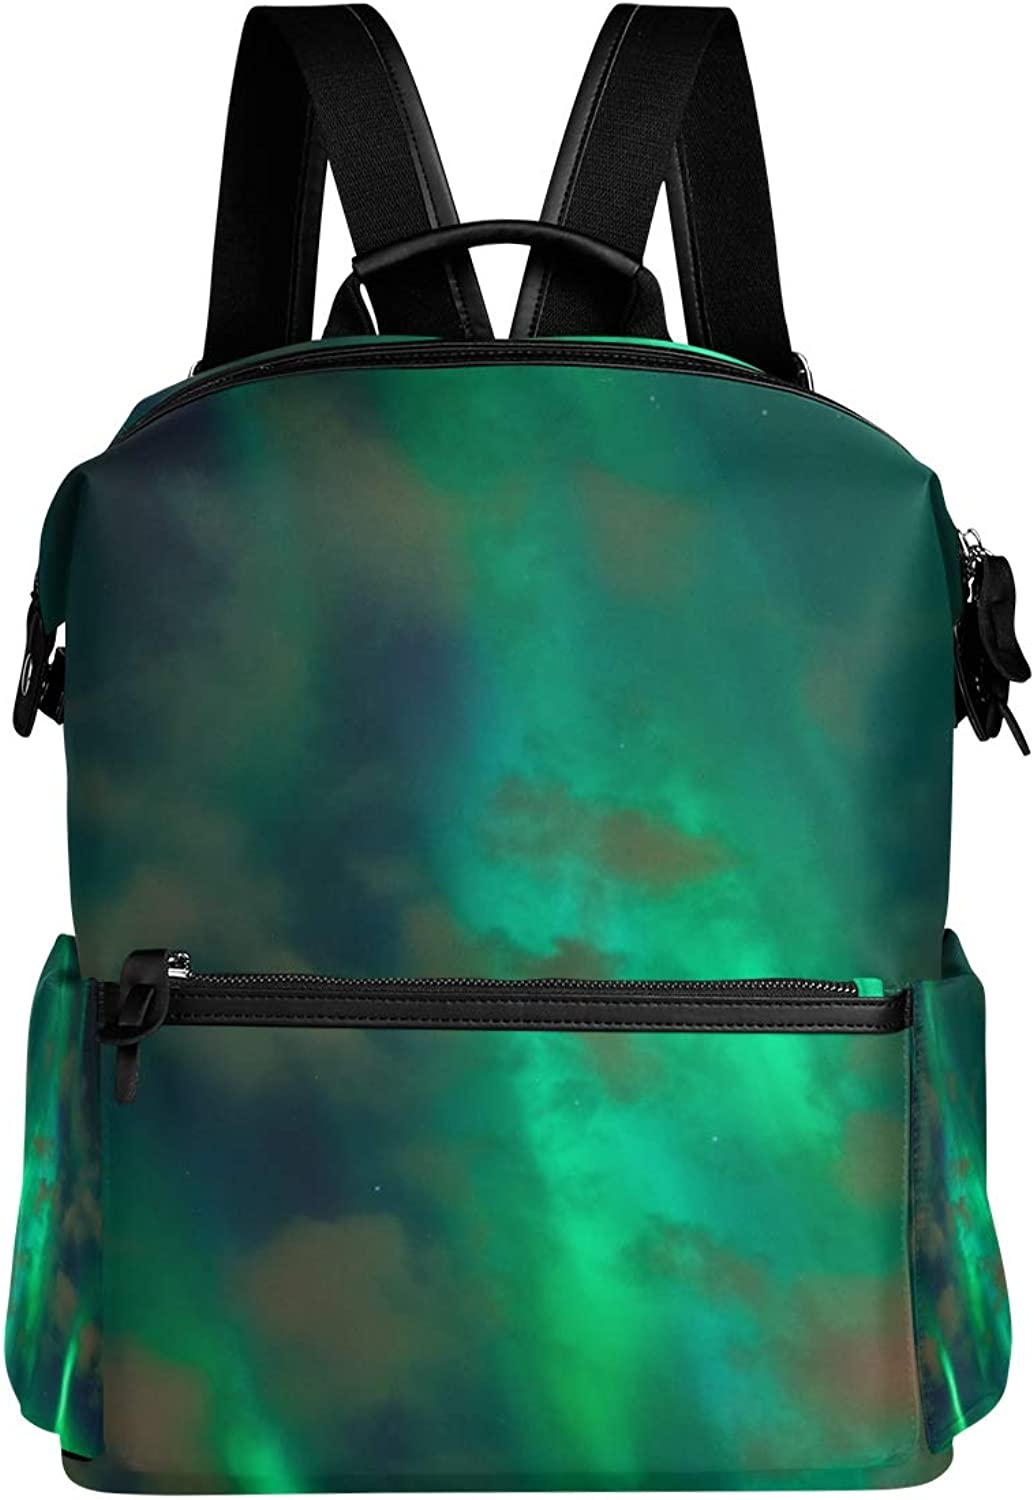 MONTOJ Beautiful Green Northern Lights Leather Travel Bag Campus Backpack